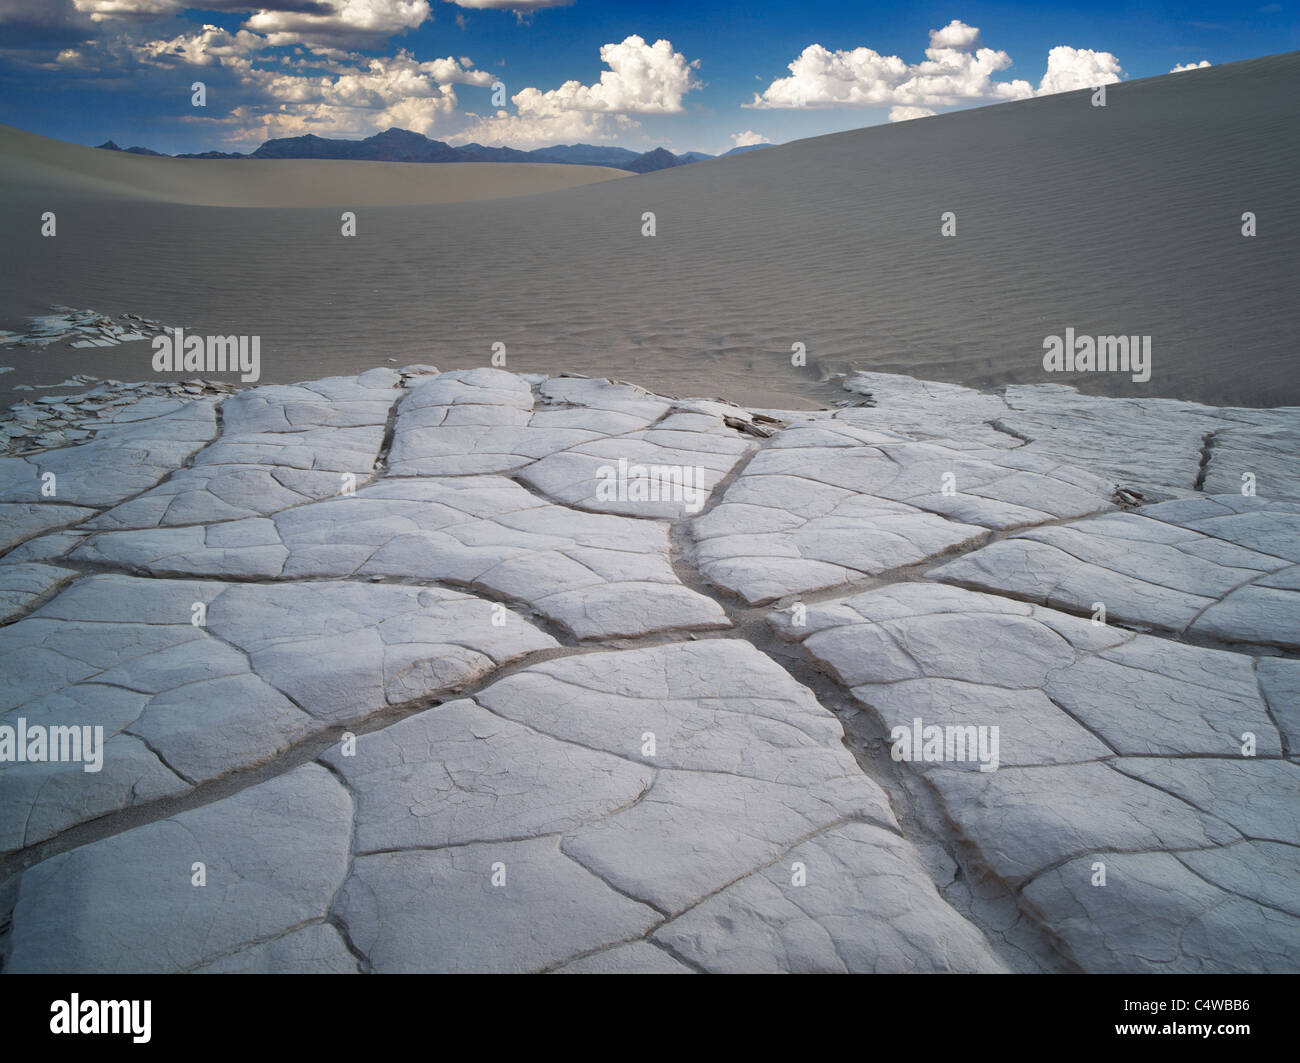 Mud patterns and dunes with sunrise. Death Valley National Park, California. Sky has been added - Stock Image